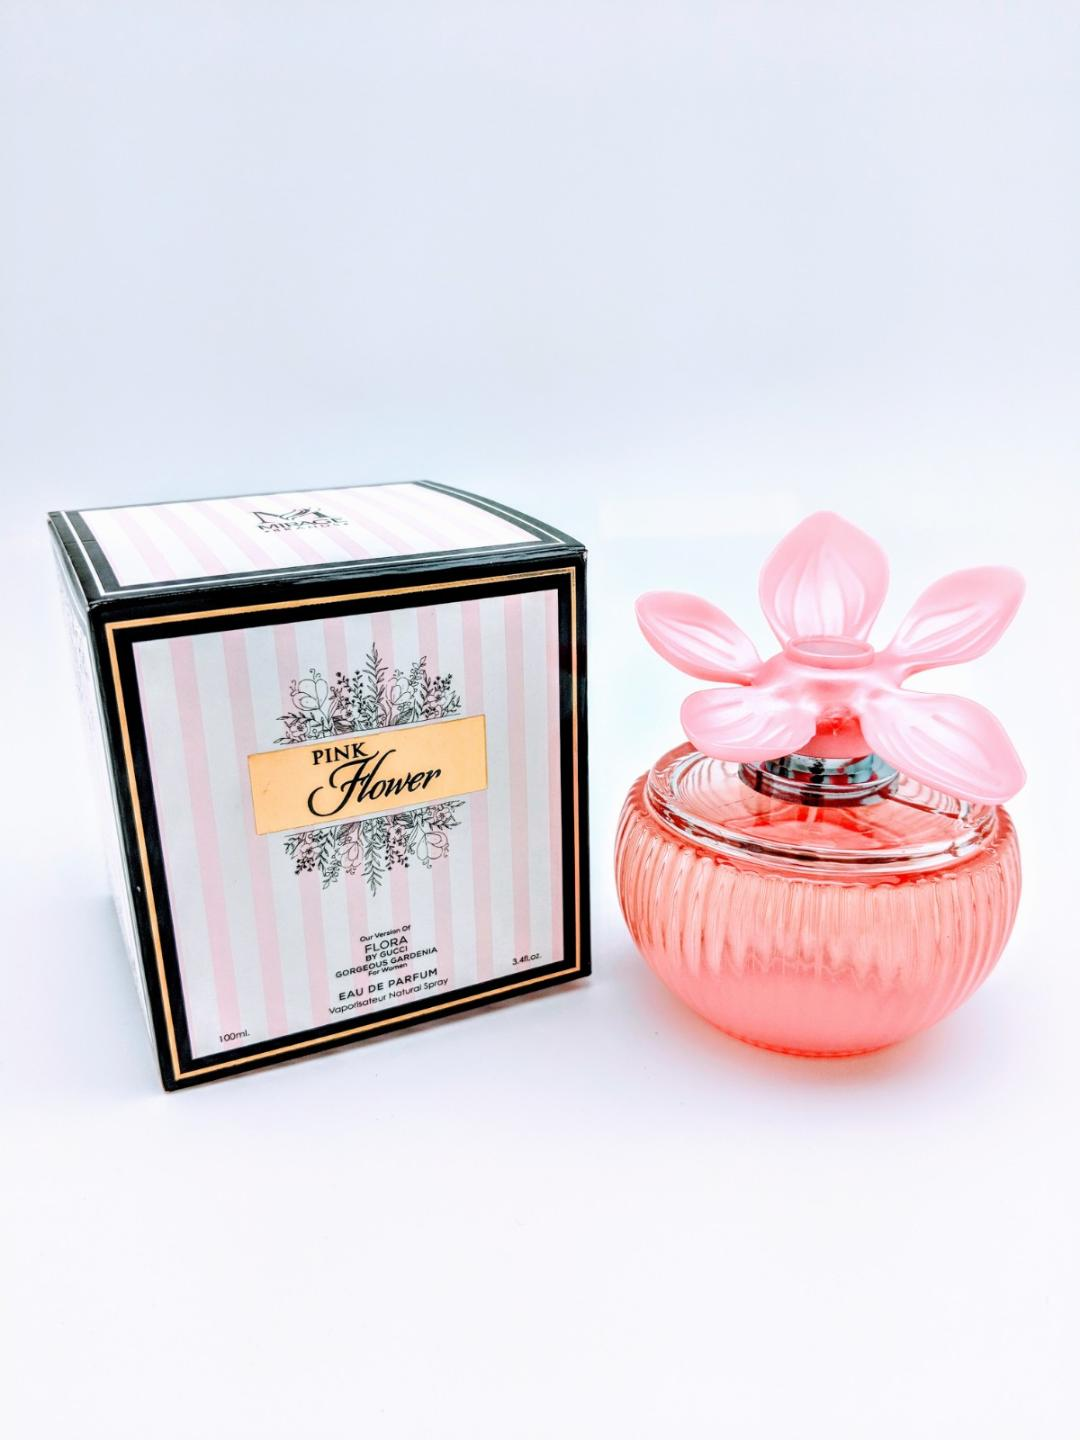 Our Version Of Flora Gorgeous Gardenia By Gucci Pink Flower